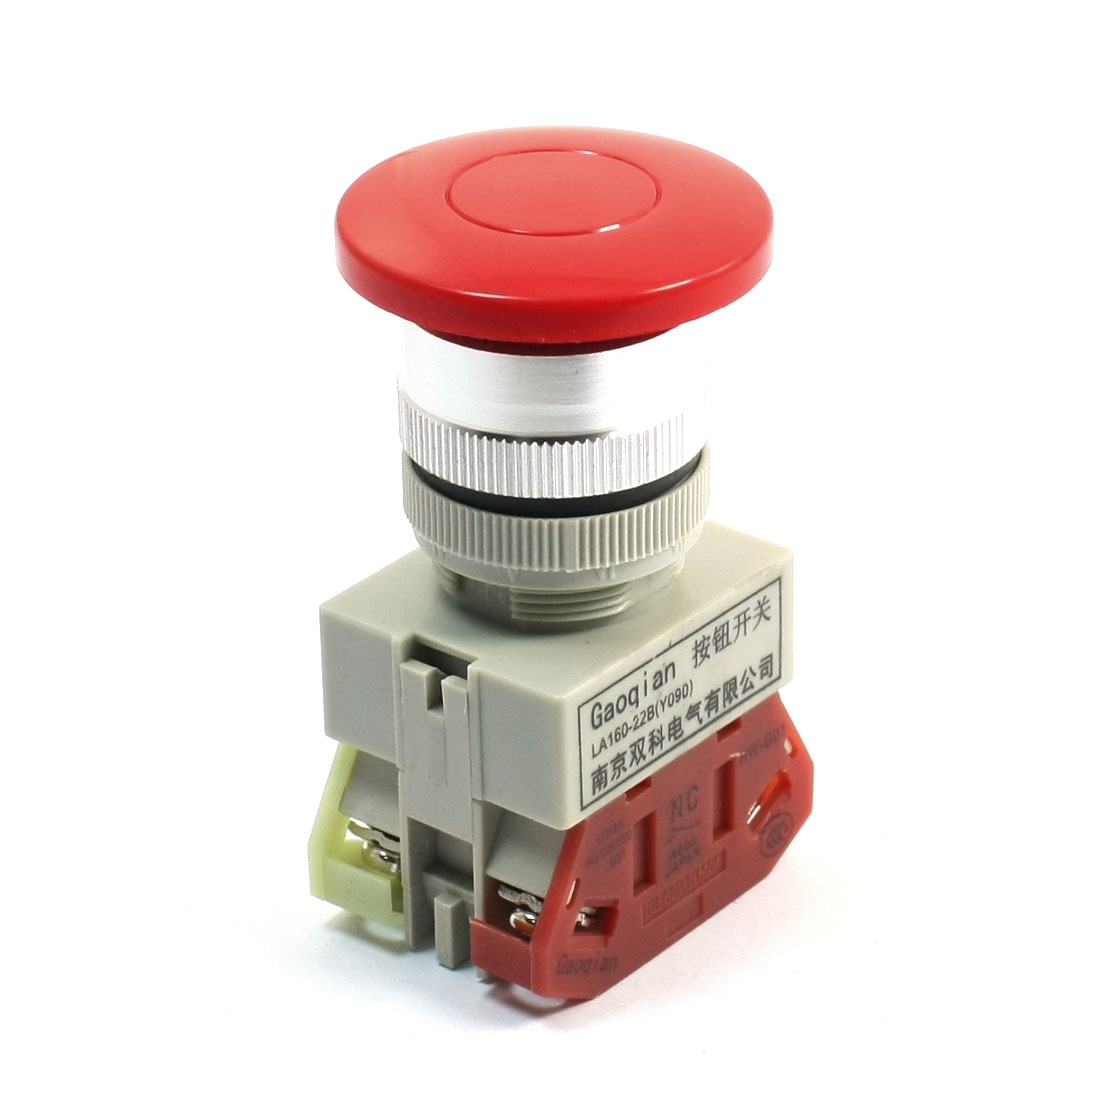 660V Ui 10A Ith DPST Momentary Red Mushroom Head Operator Pushbutton Switch